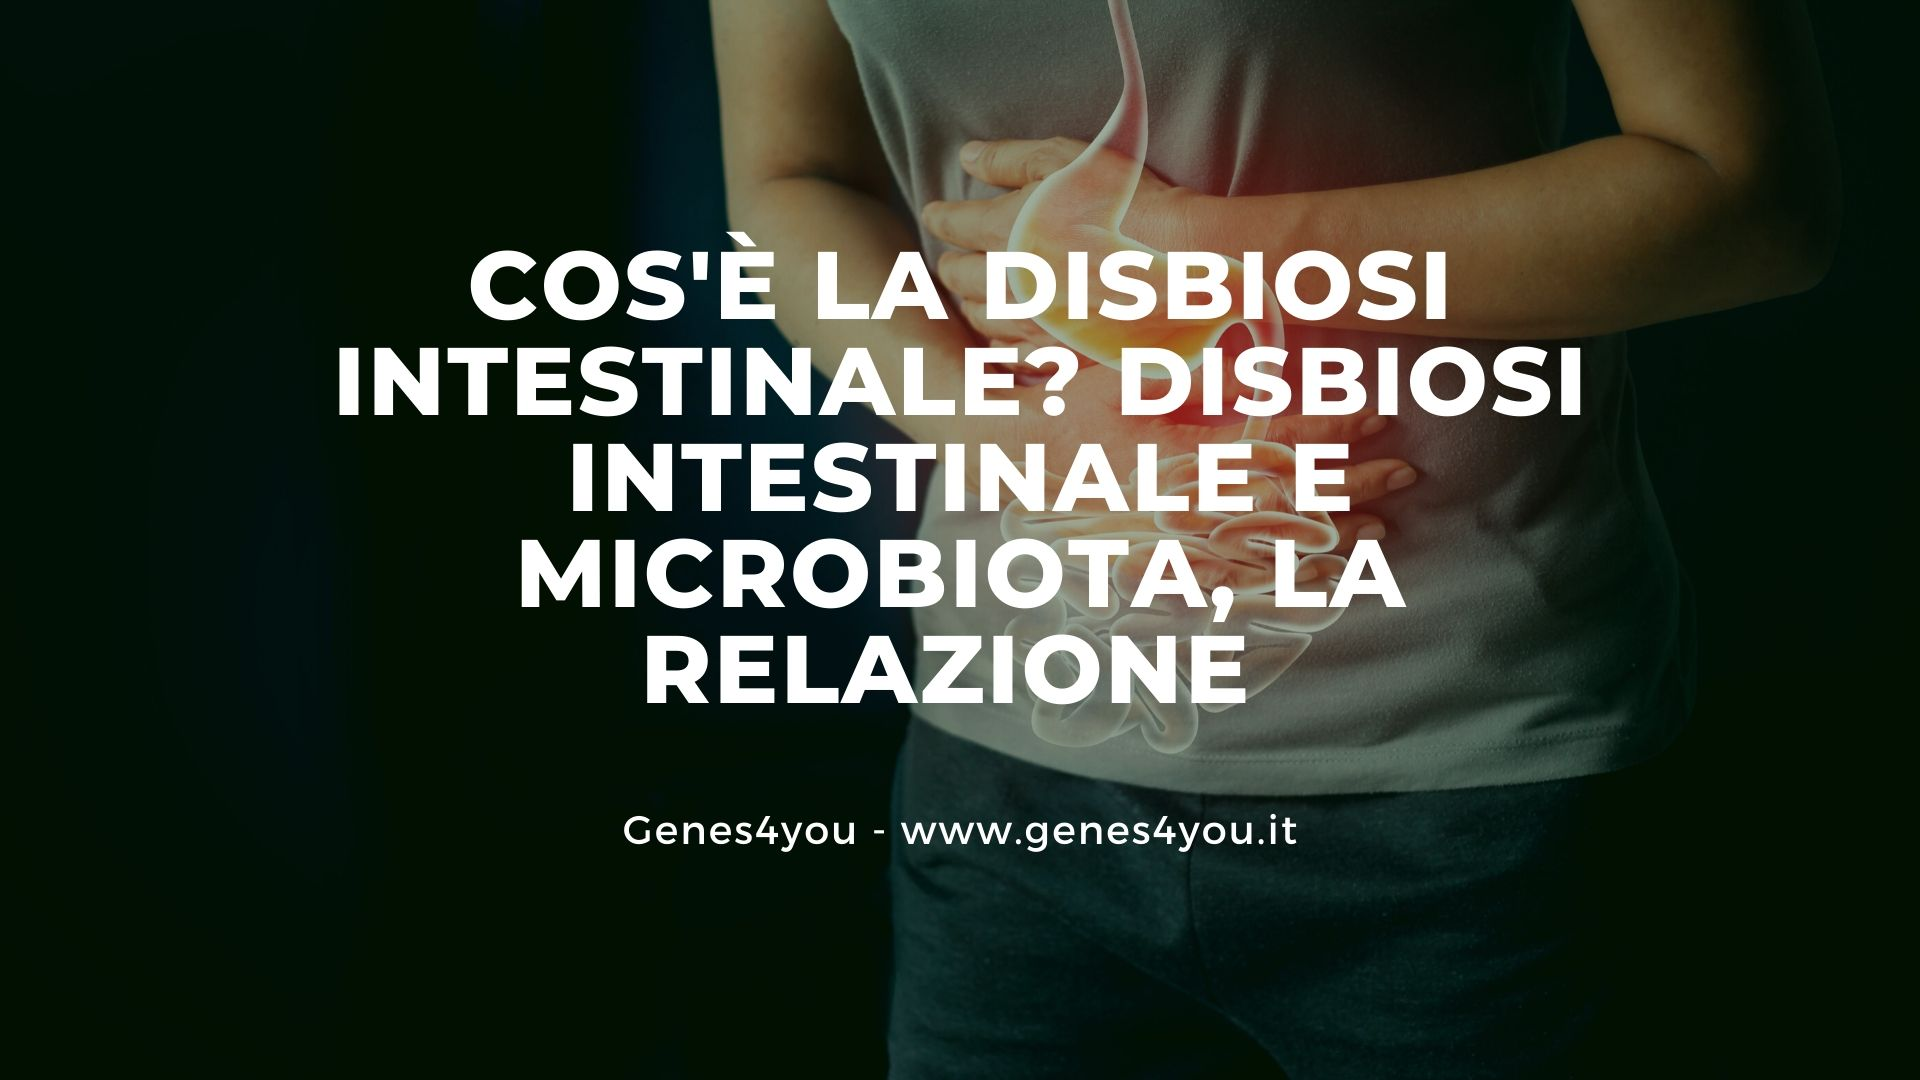 DISBIOSI INTESTINALE E MICROBIOTA - Genes4you(1)